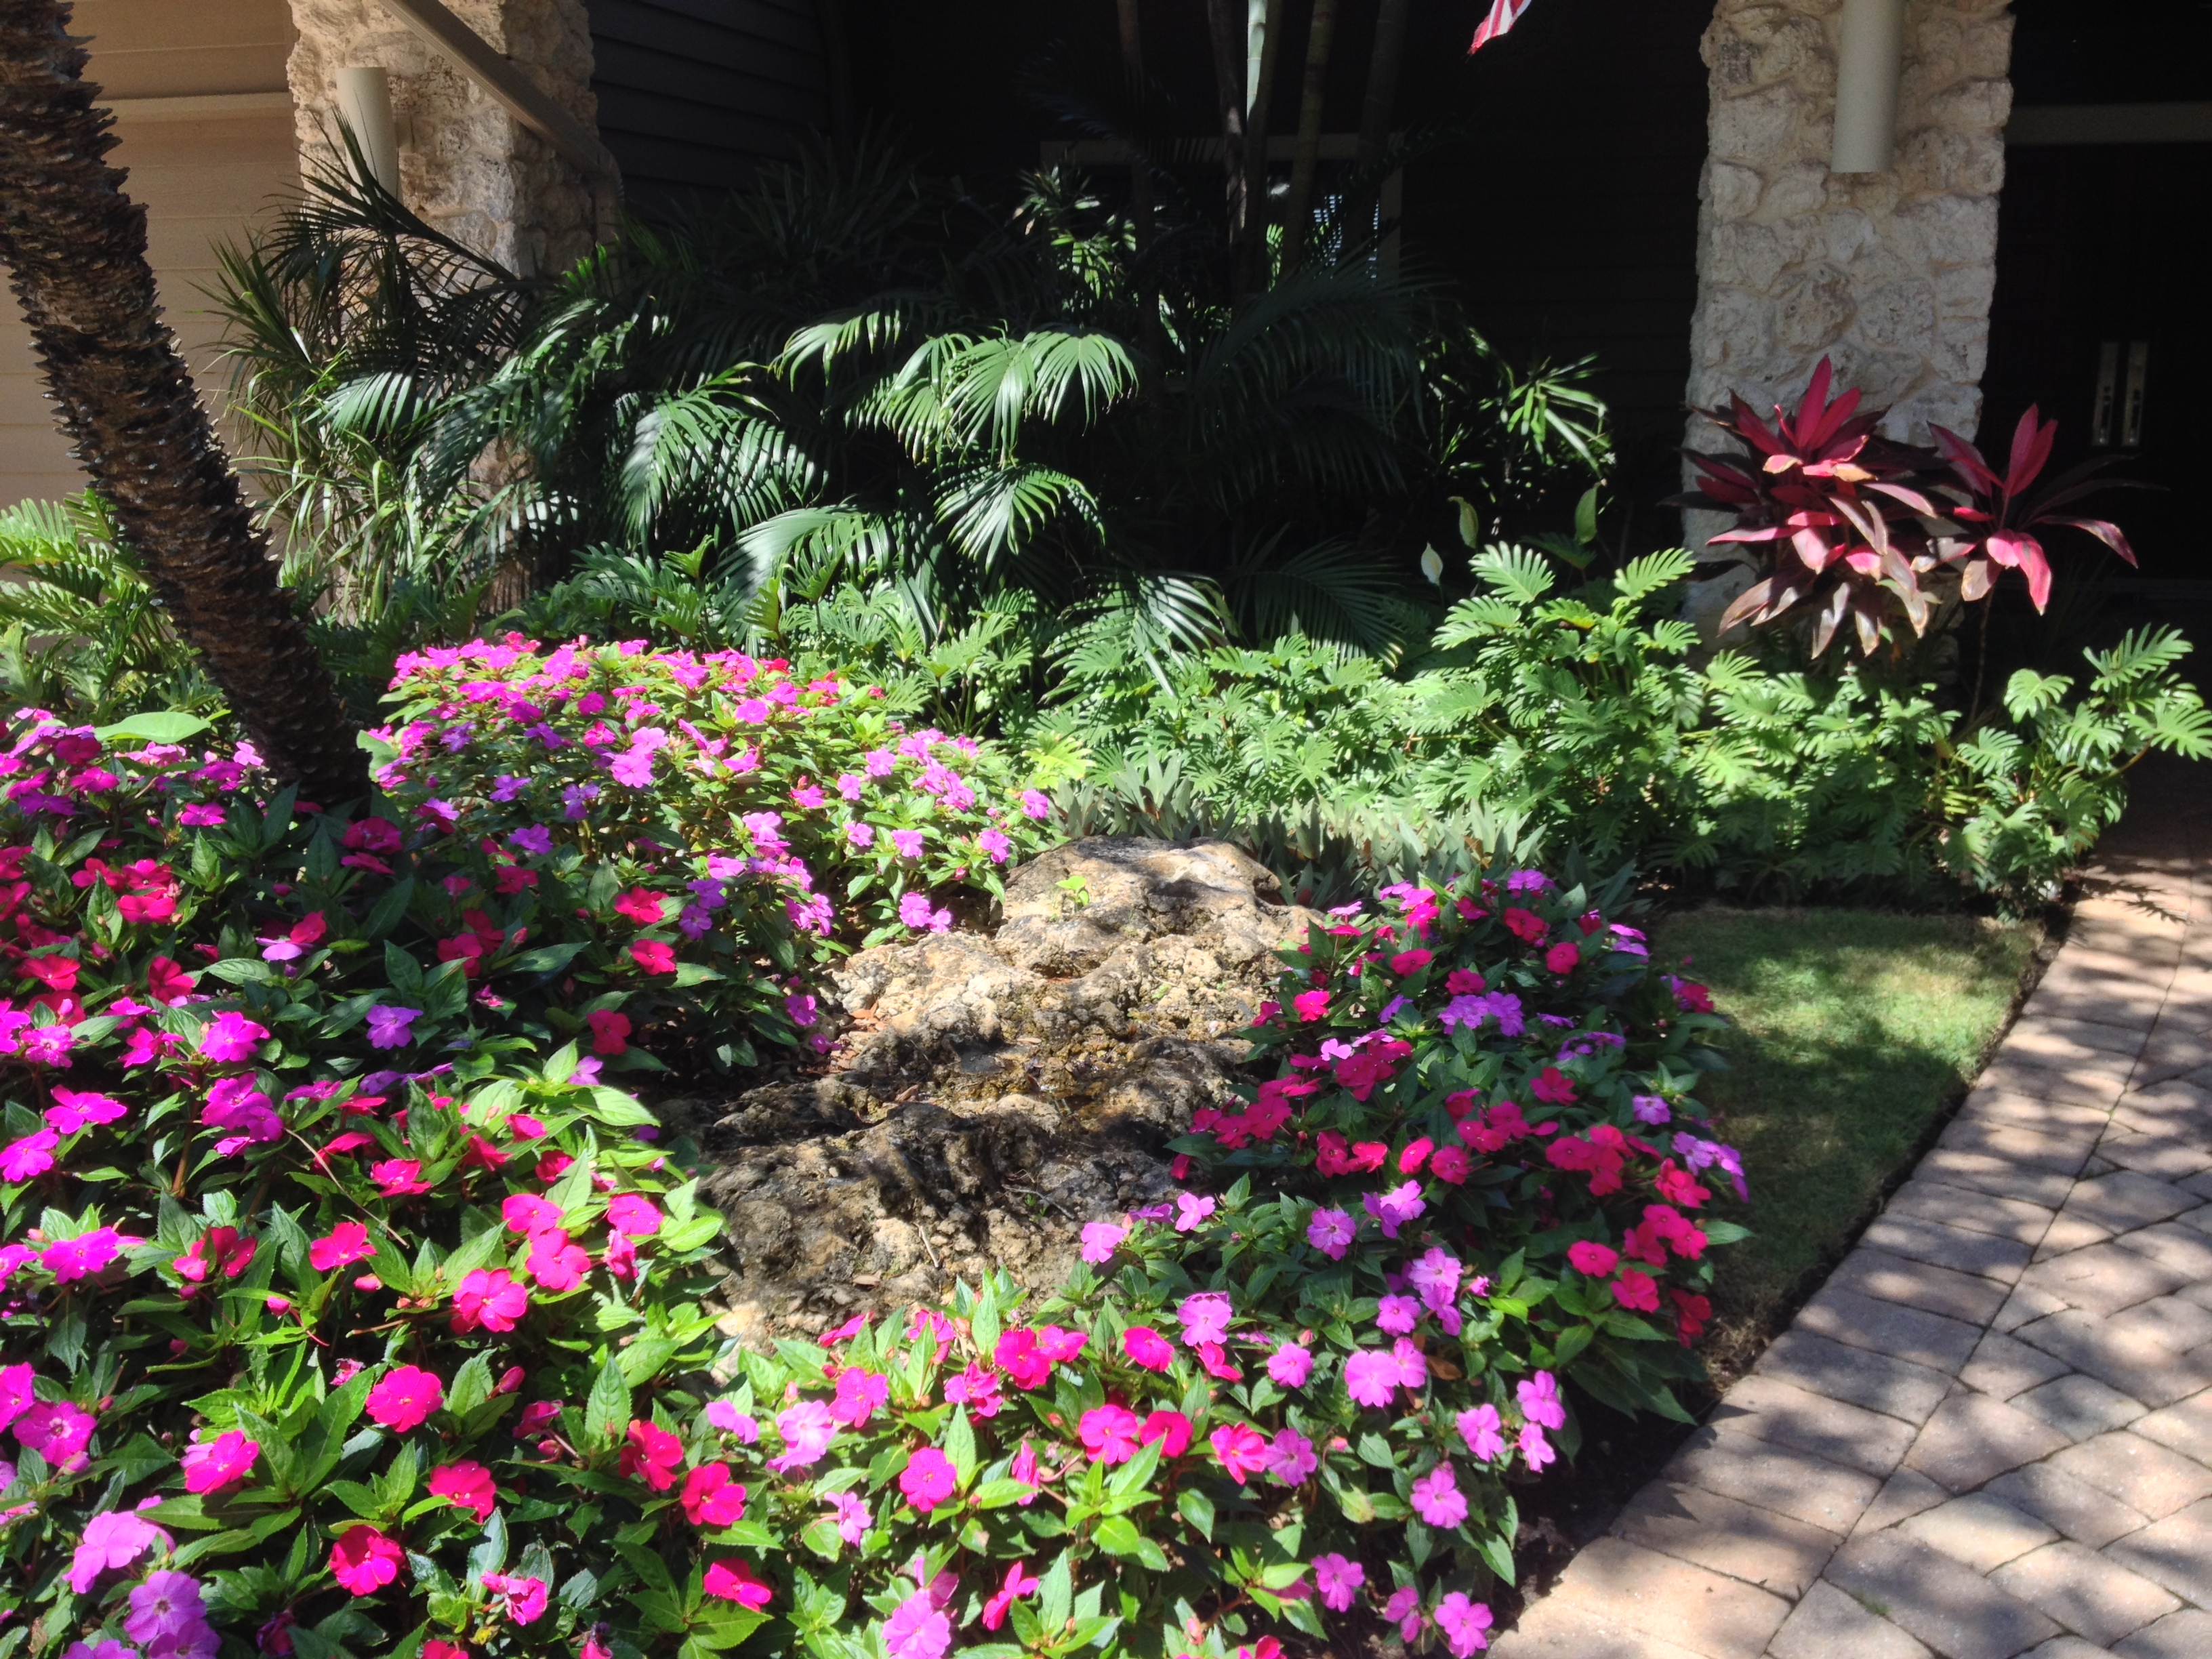 Joe Angeleri - Landscaping design and installation